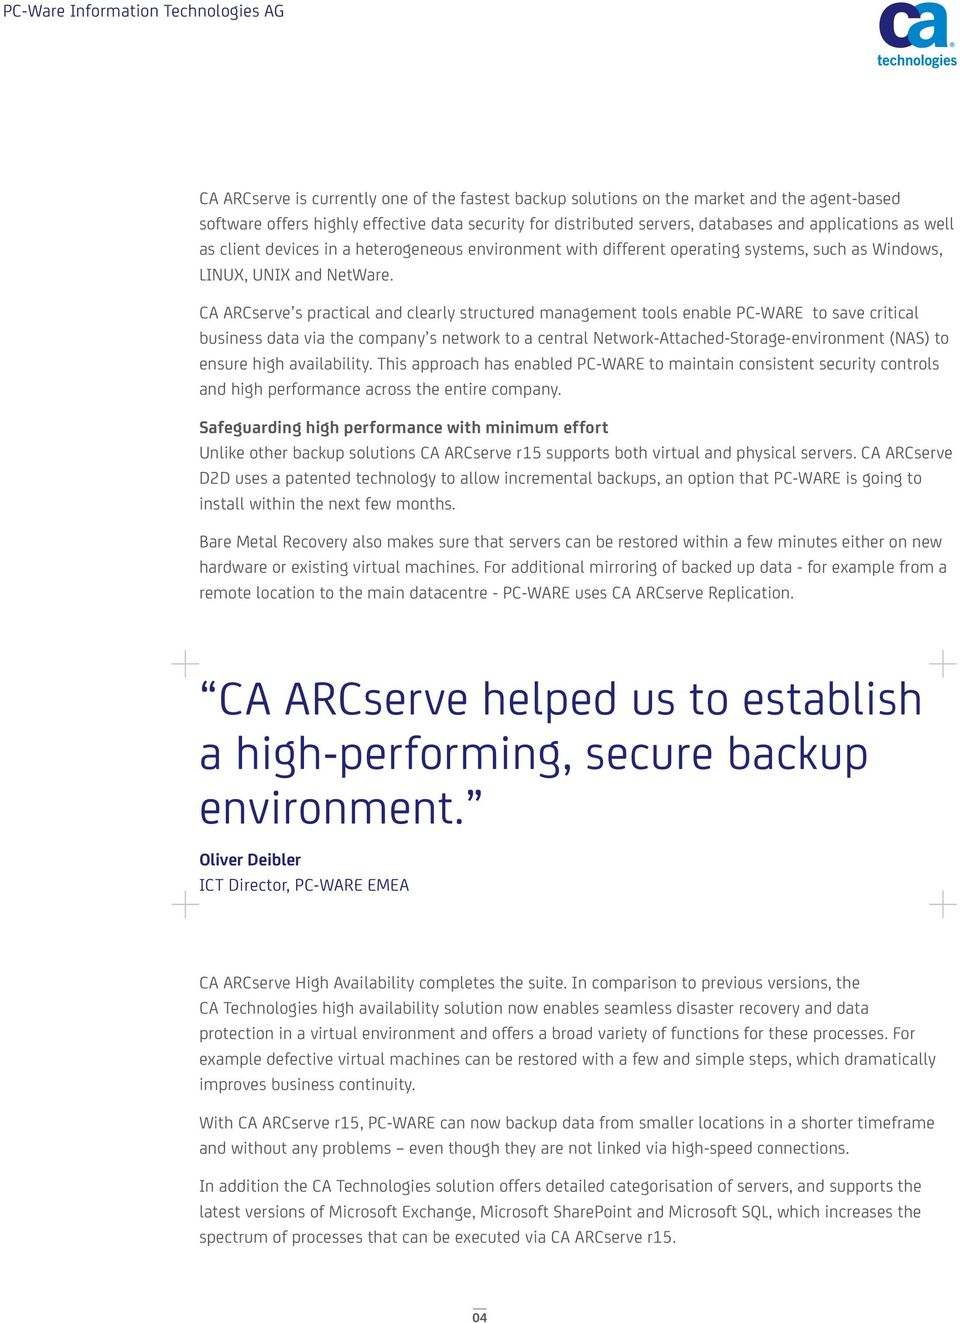 CA ARCserve s practical and clearly structured management tools enable PC-WARE to save critical business data via the company s network to a central Network-Attached-Storage-environment (NAS) to